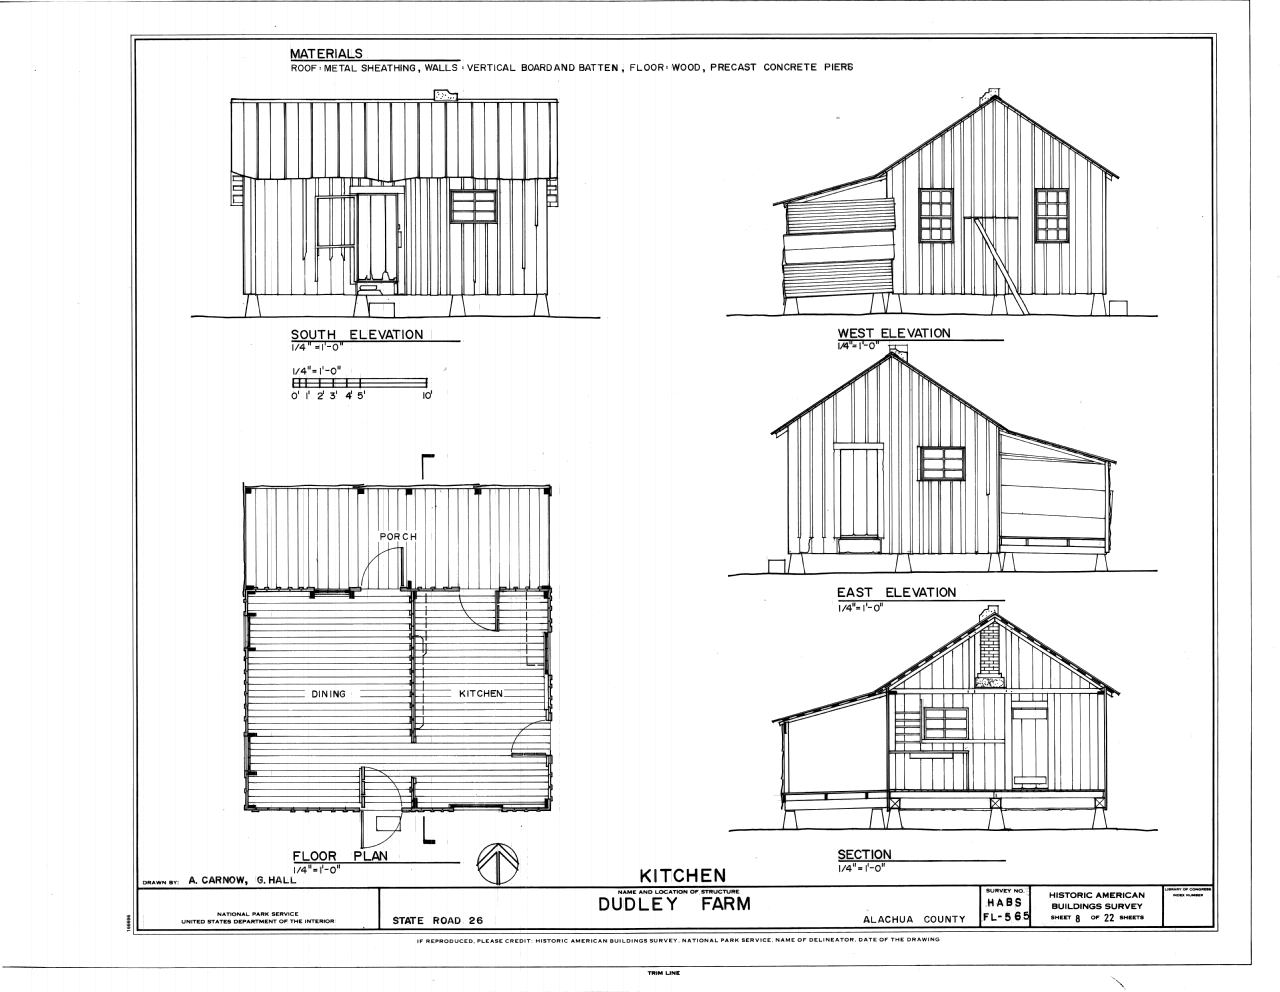 Elevation From Plan : File kitchen elevations floor plan and section dudley